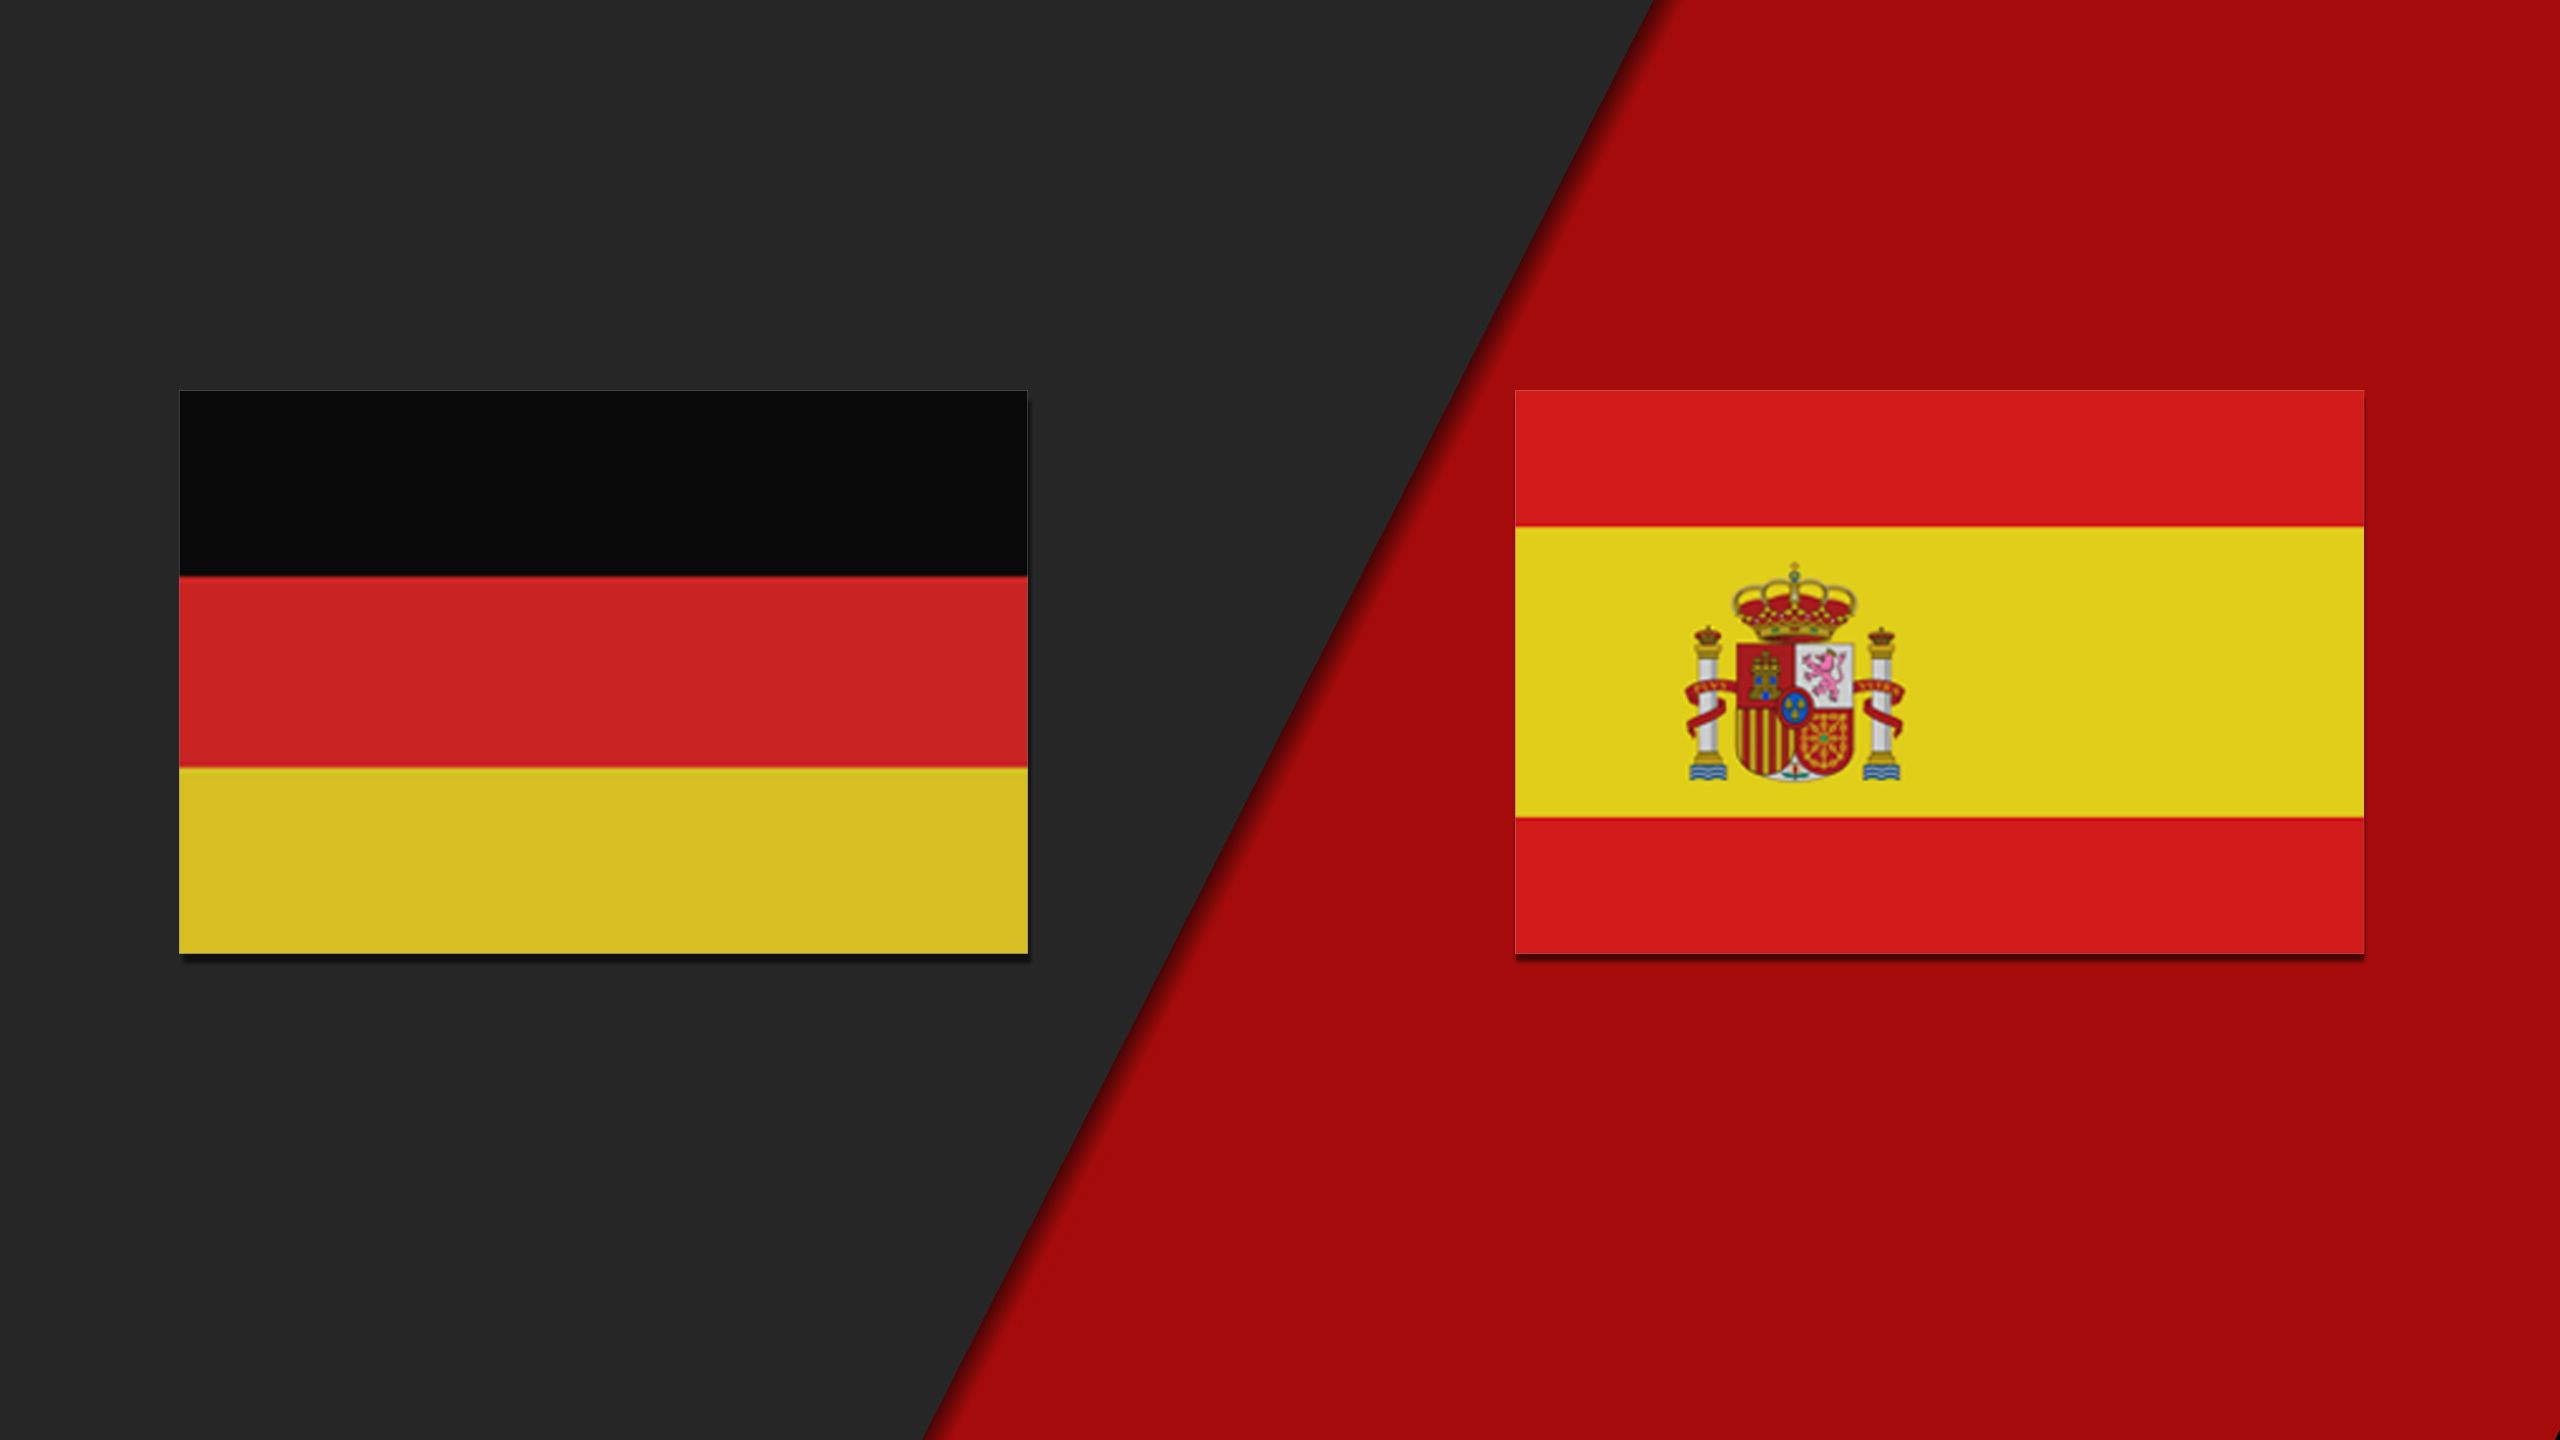 Germany vs. Spain (International Friendly)